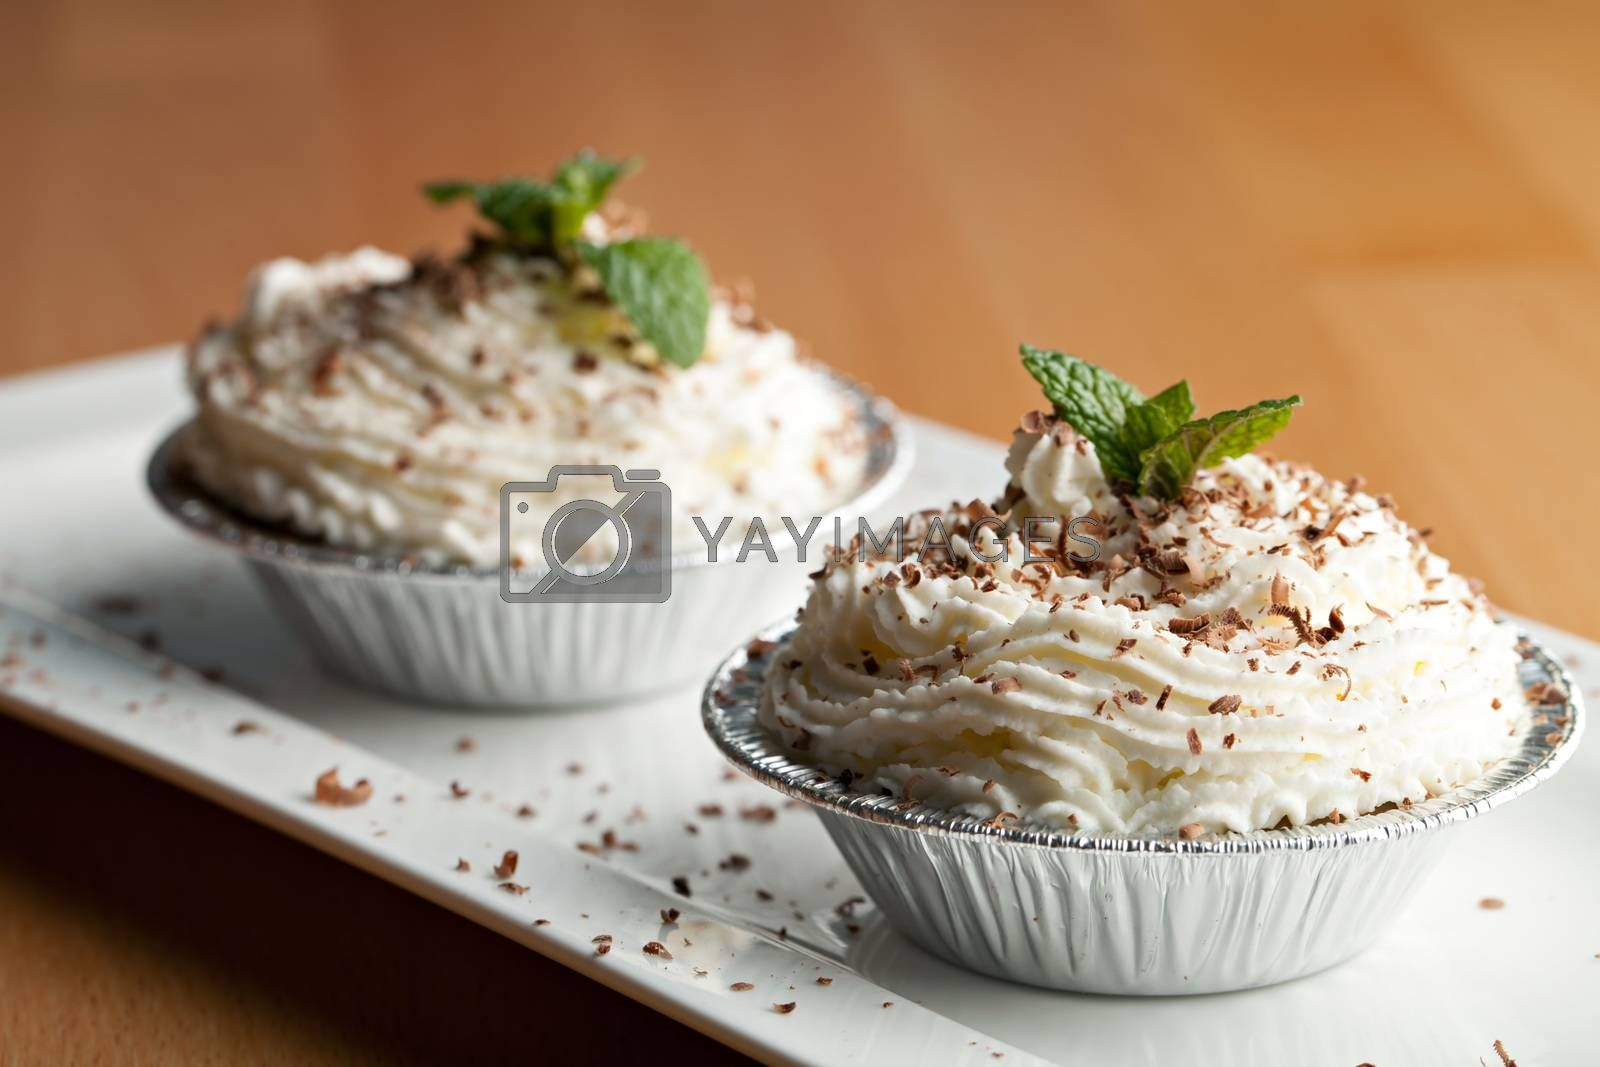 Parfait desserts with fresh whipped cream and chocolate shavings. Shallow depth of field.